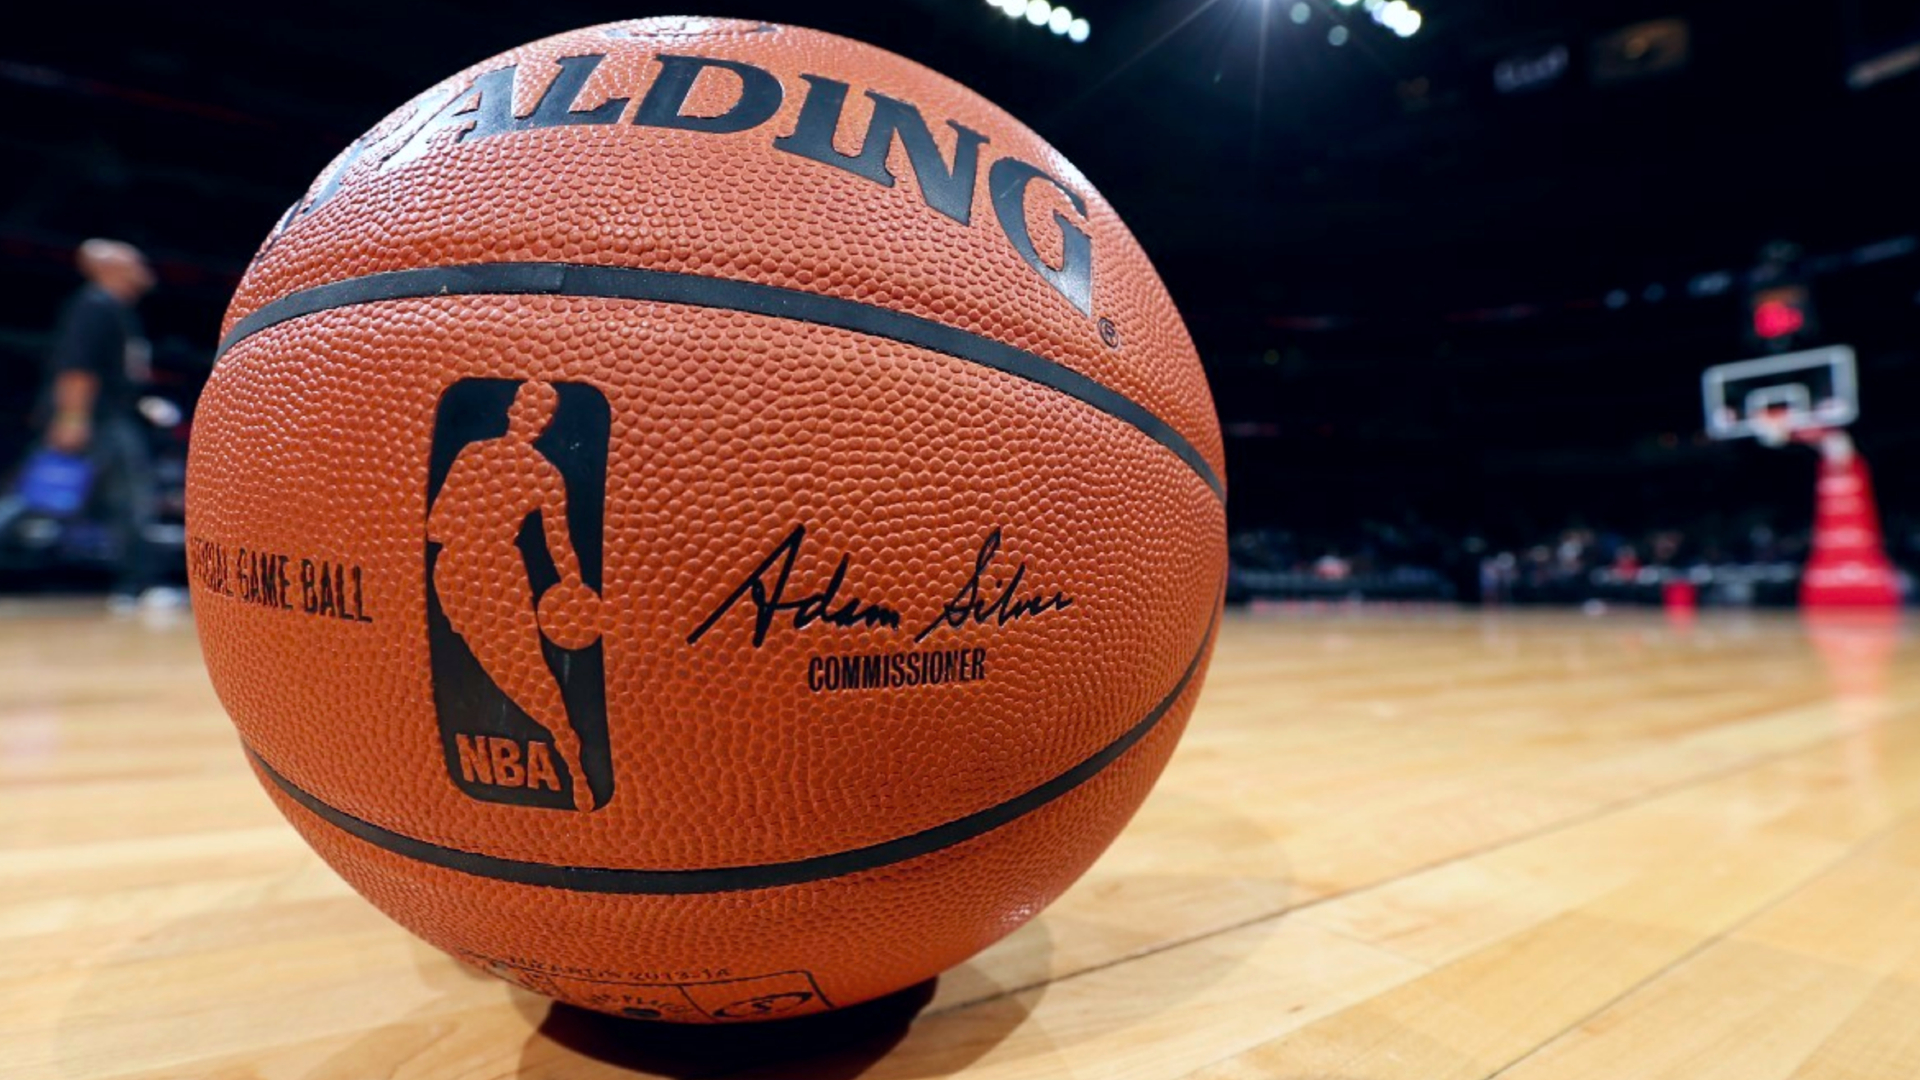 NBA going ahead with plan to test unvaccinated players often